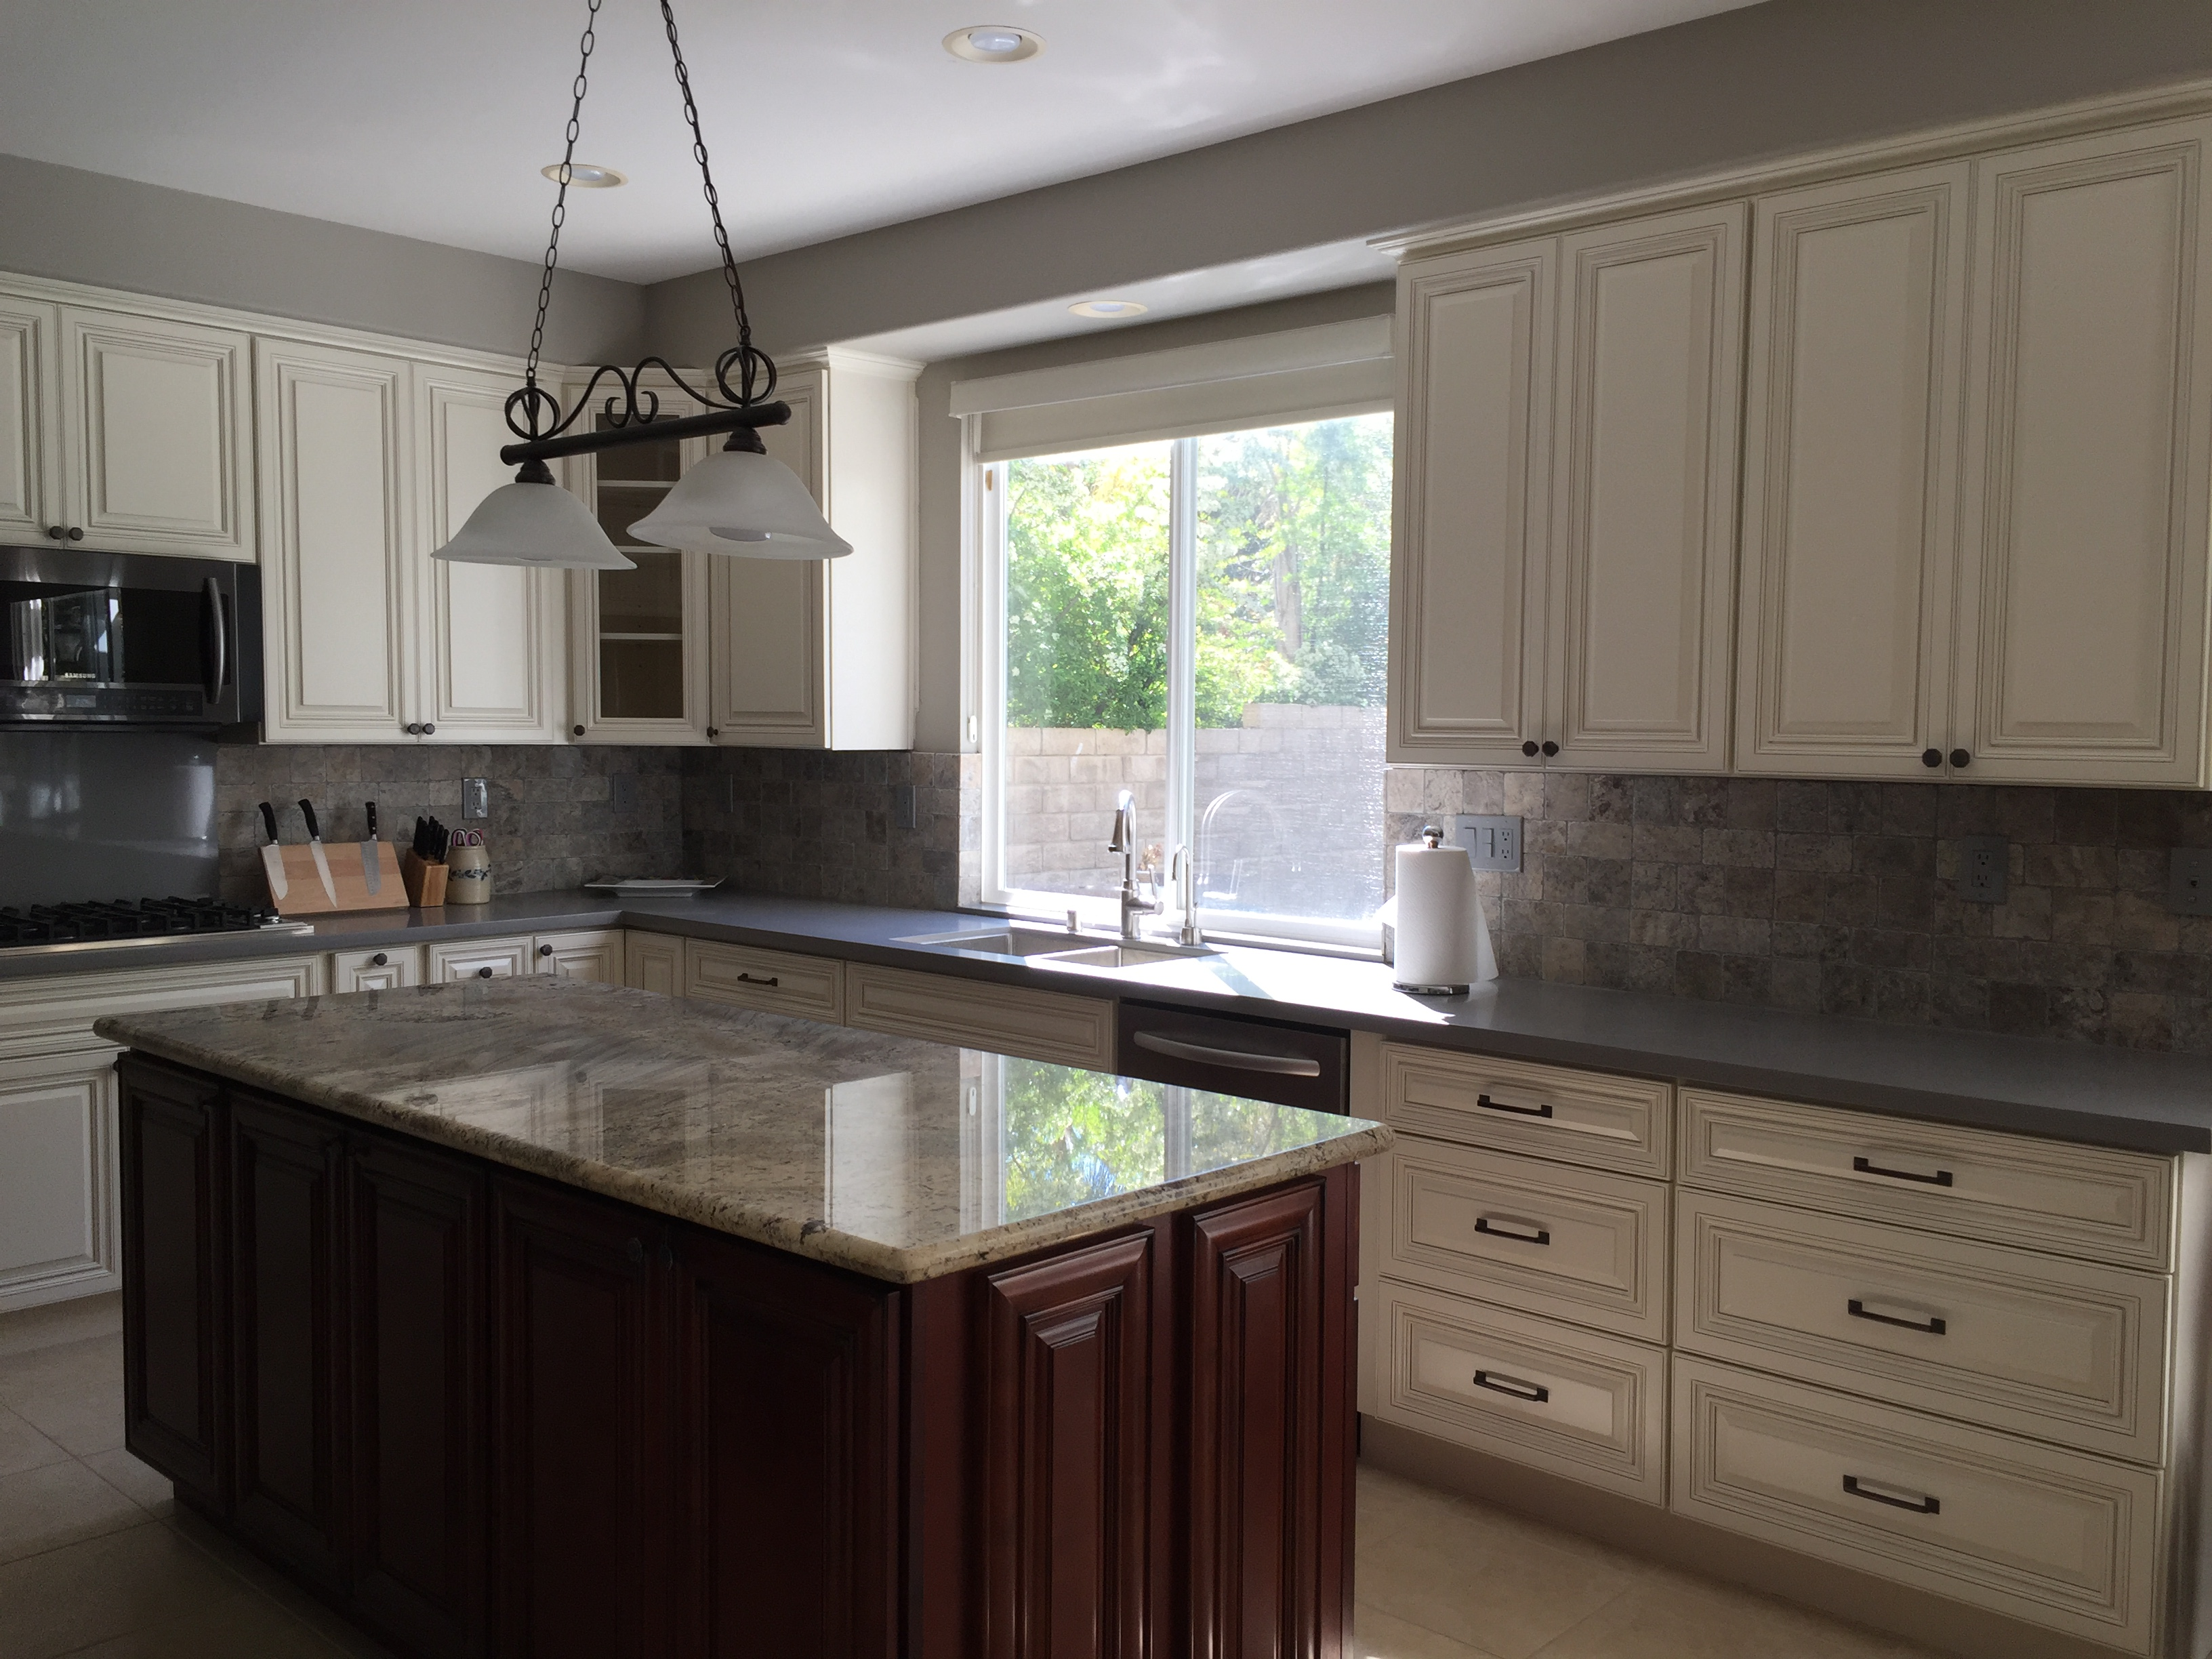 Antique White Cabinets Granite & Quartz Countertops